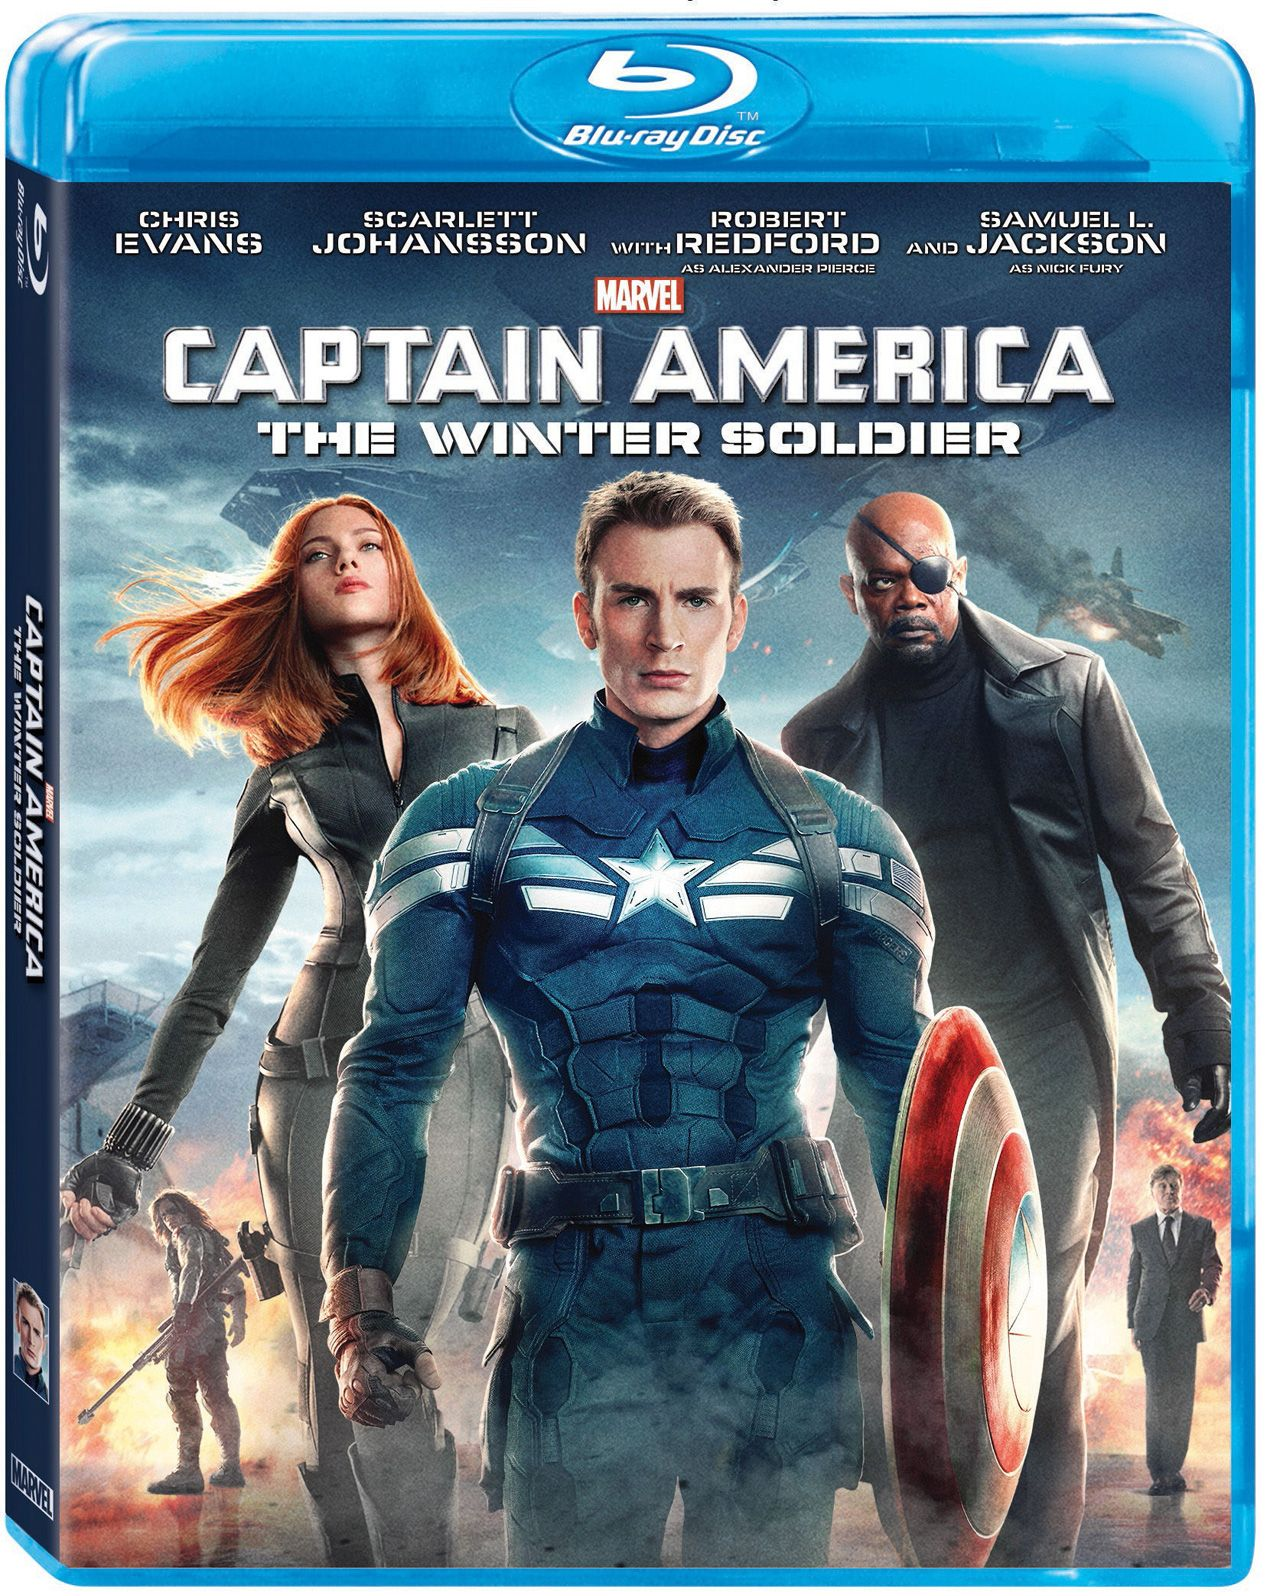 New Captain America The Winter Soldier Featurette Highlights Black Widow Superherohype Captain America Winter Captain America Winter Soldier Captain America